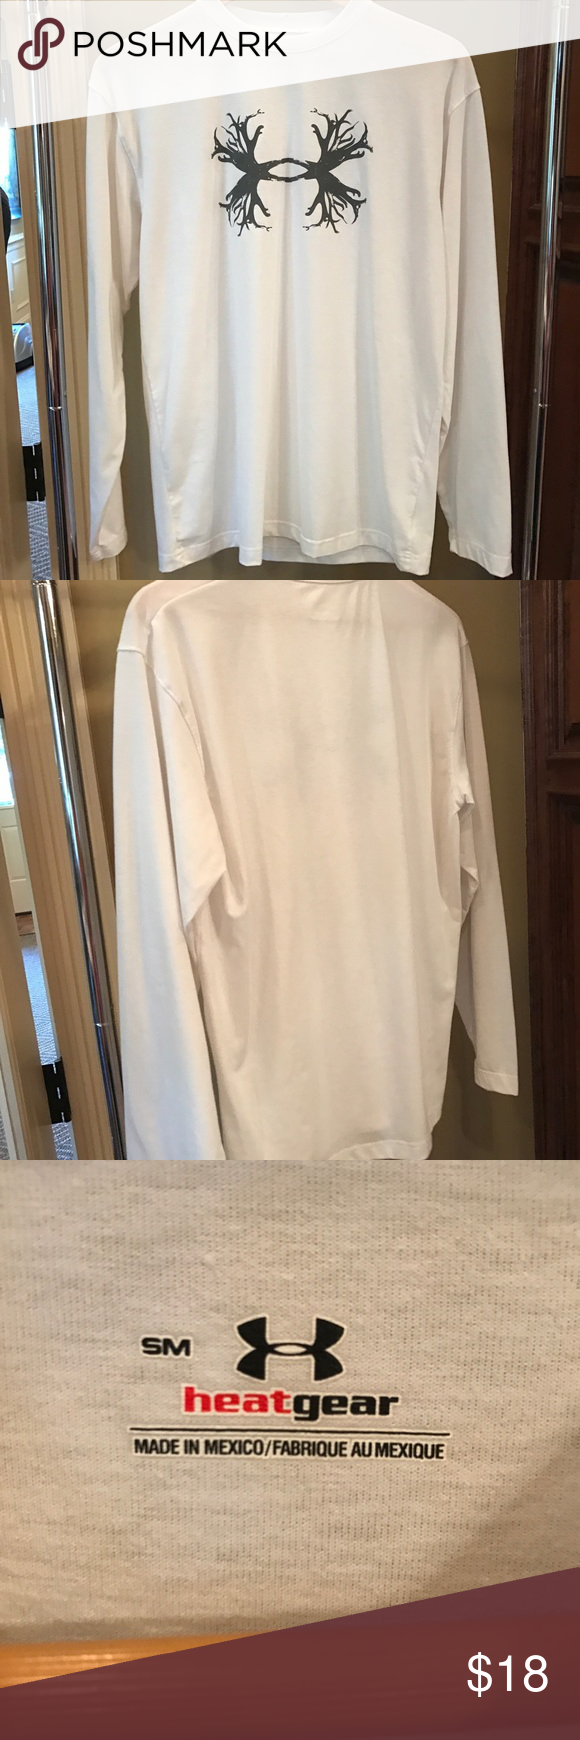 Under armour long sleeve tee Great condition. No flaws Under Armour Shirts Tees - Long Sleeve